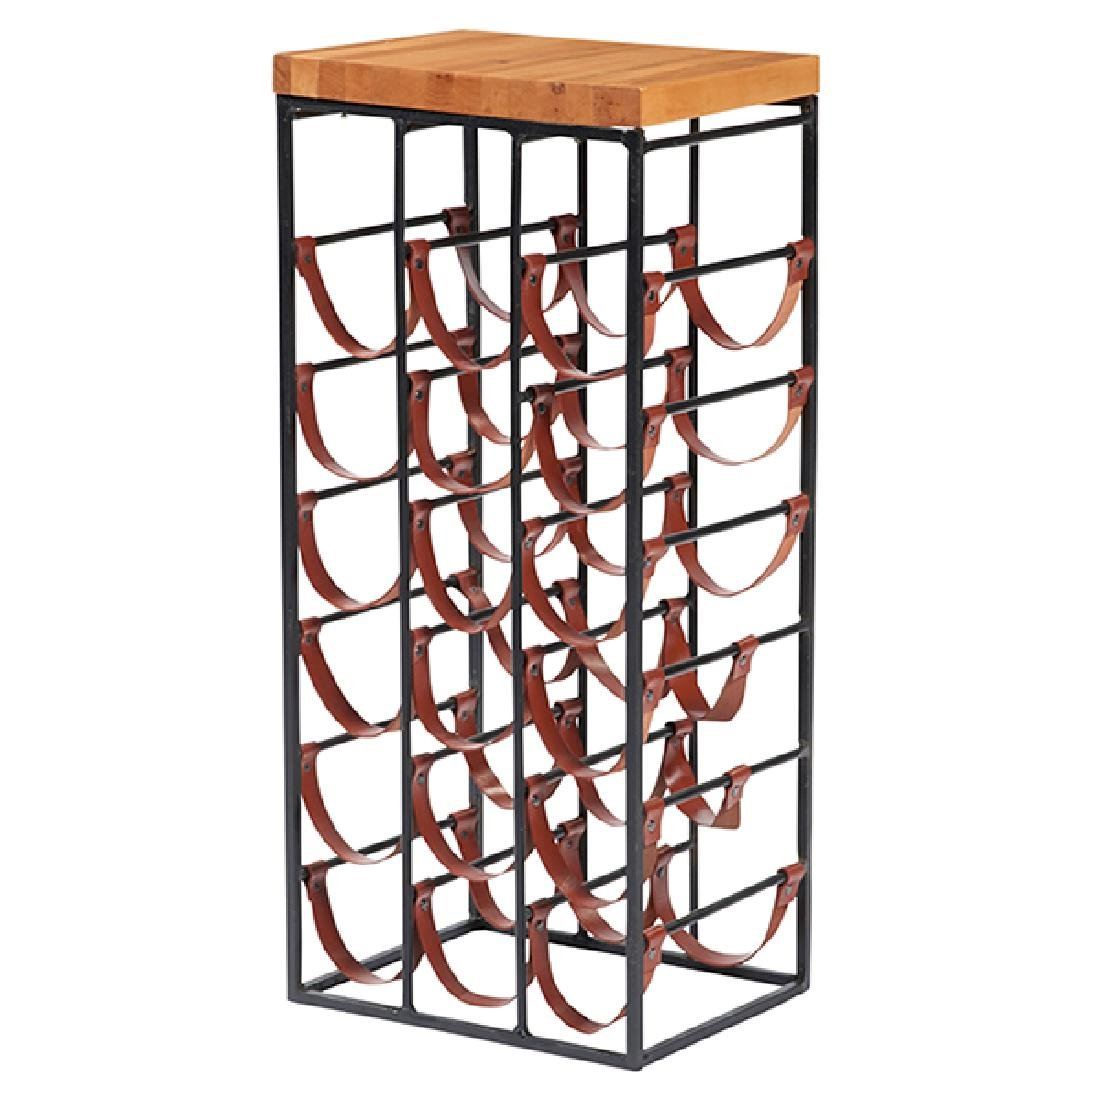 Arthur Umanoff for Shaver-Howard wine rack